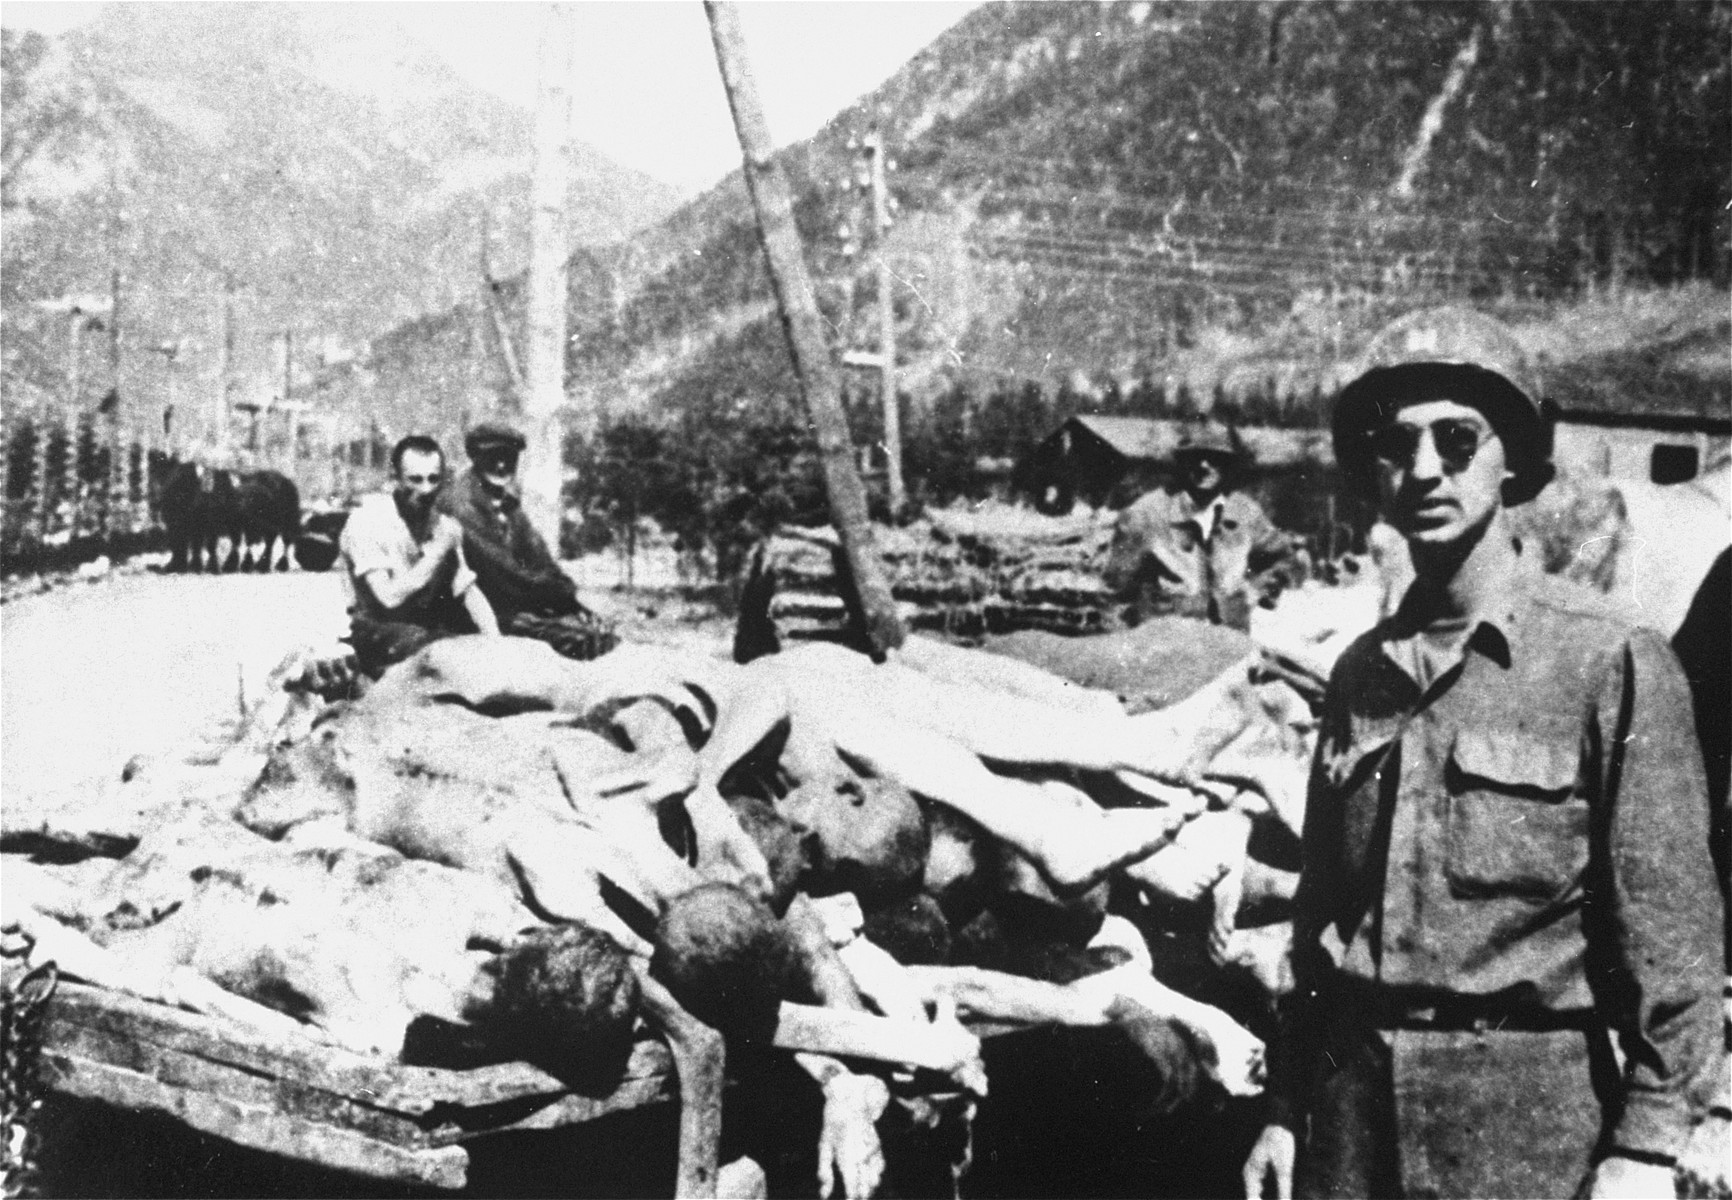 An American soldier, Captain Al Winters, poses next to a wagon loaded with the bodies of former prisoners at the newly liberated Ebensee concentration camp.